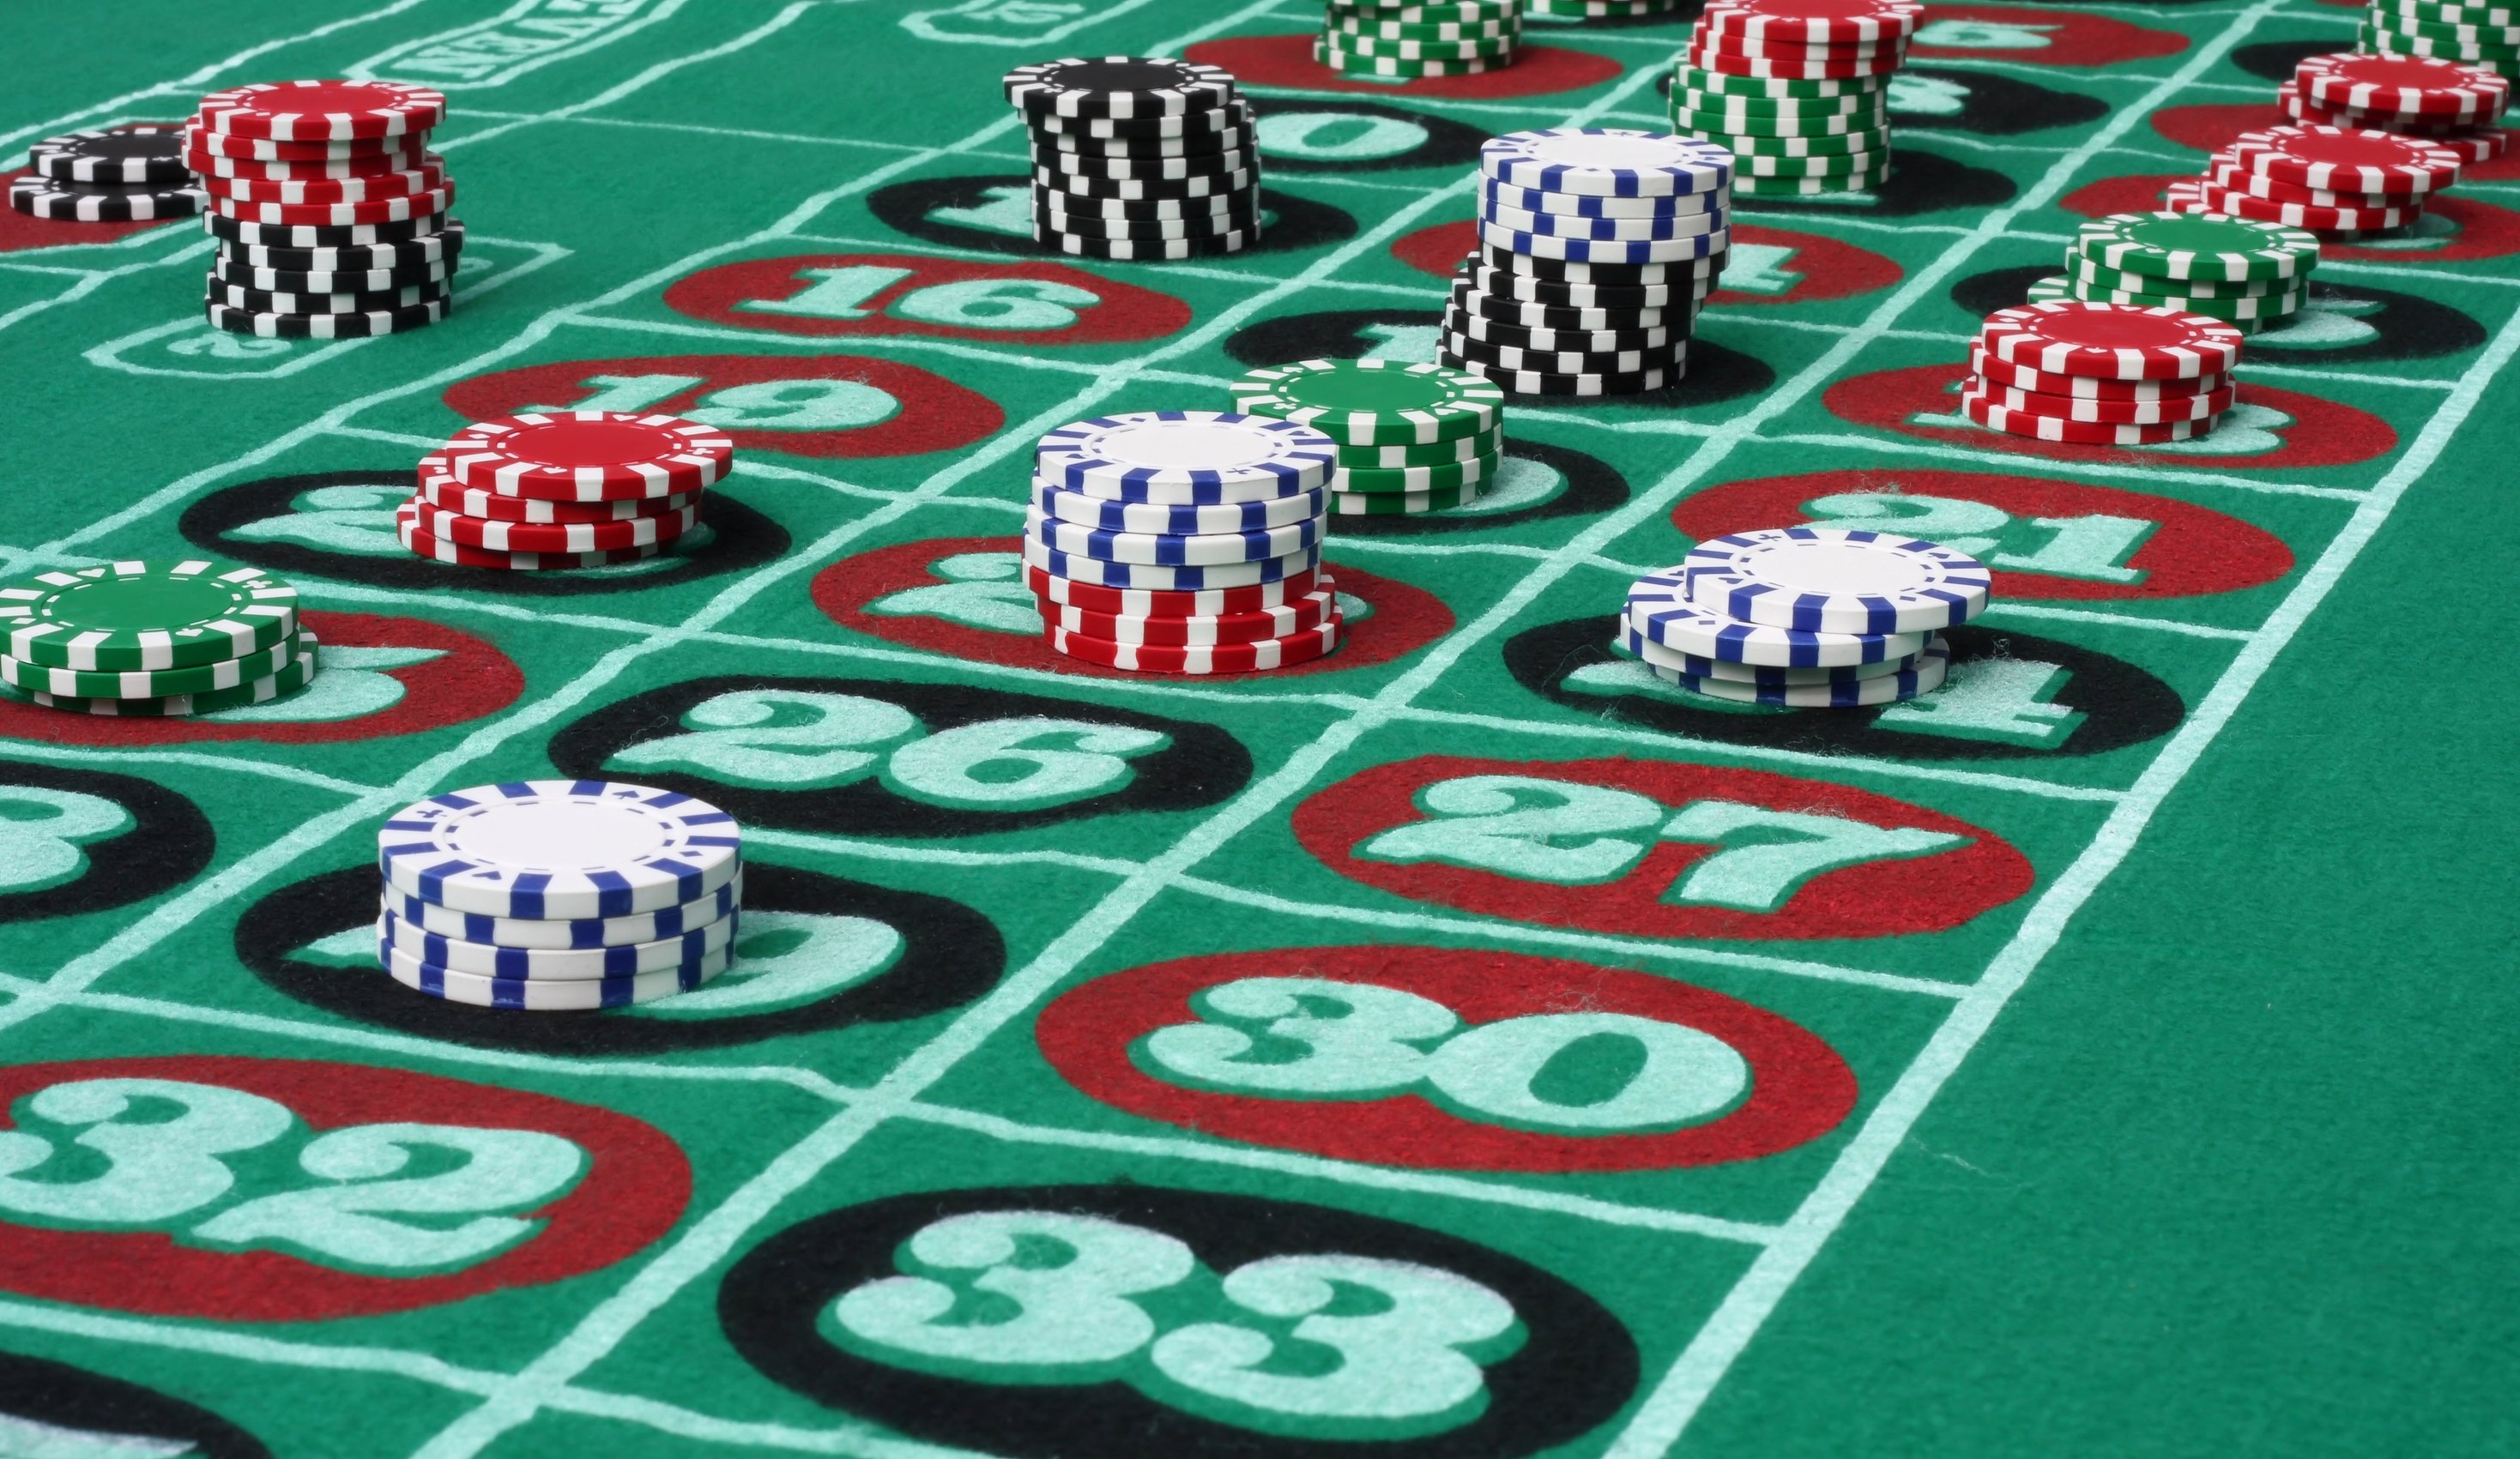 Roulette wheel gambling 14 wallpaper 2937x1701 355046 wallpaperup - Table tv a roulettes ...